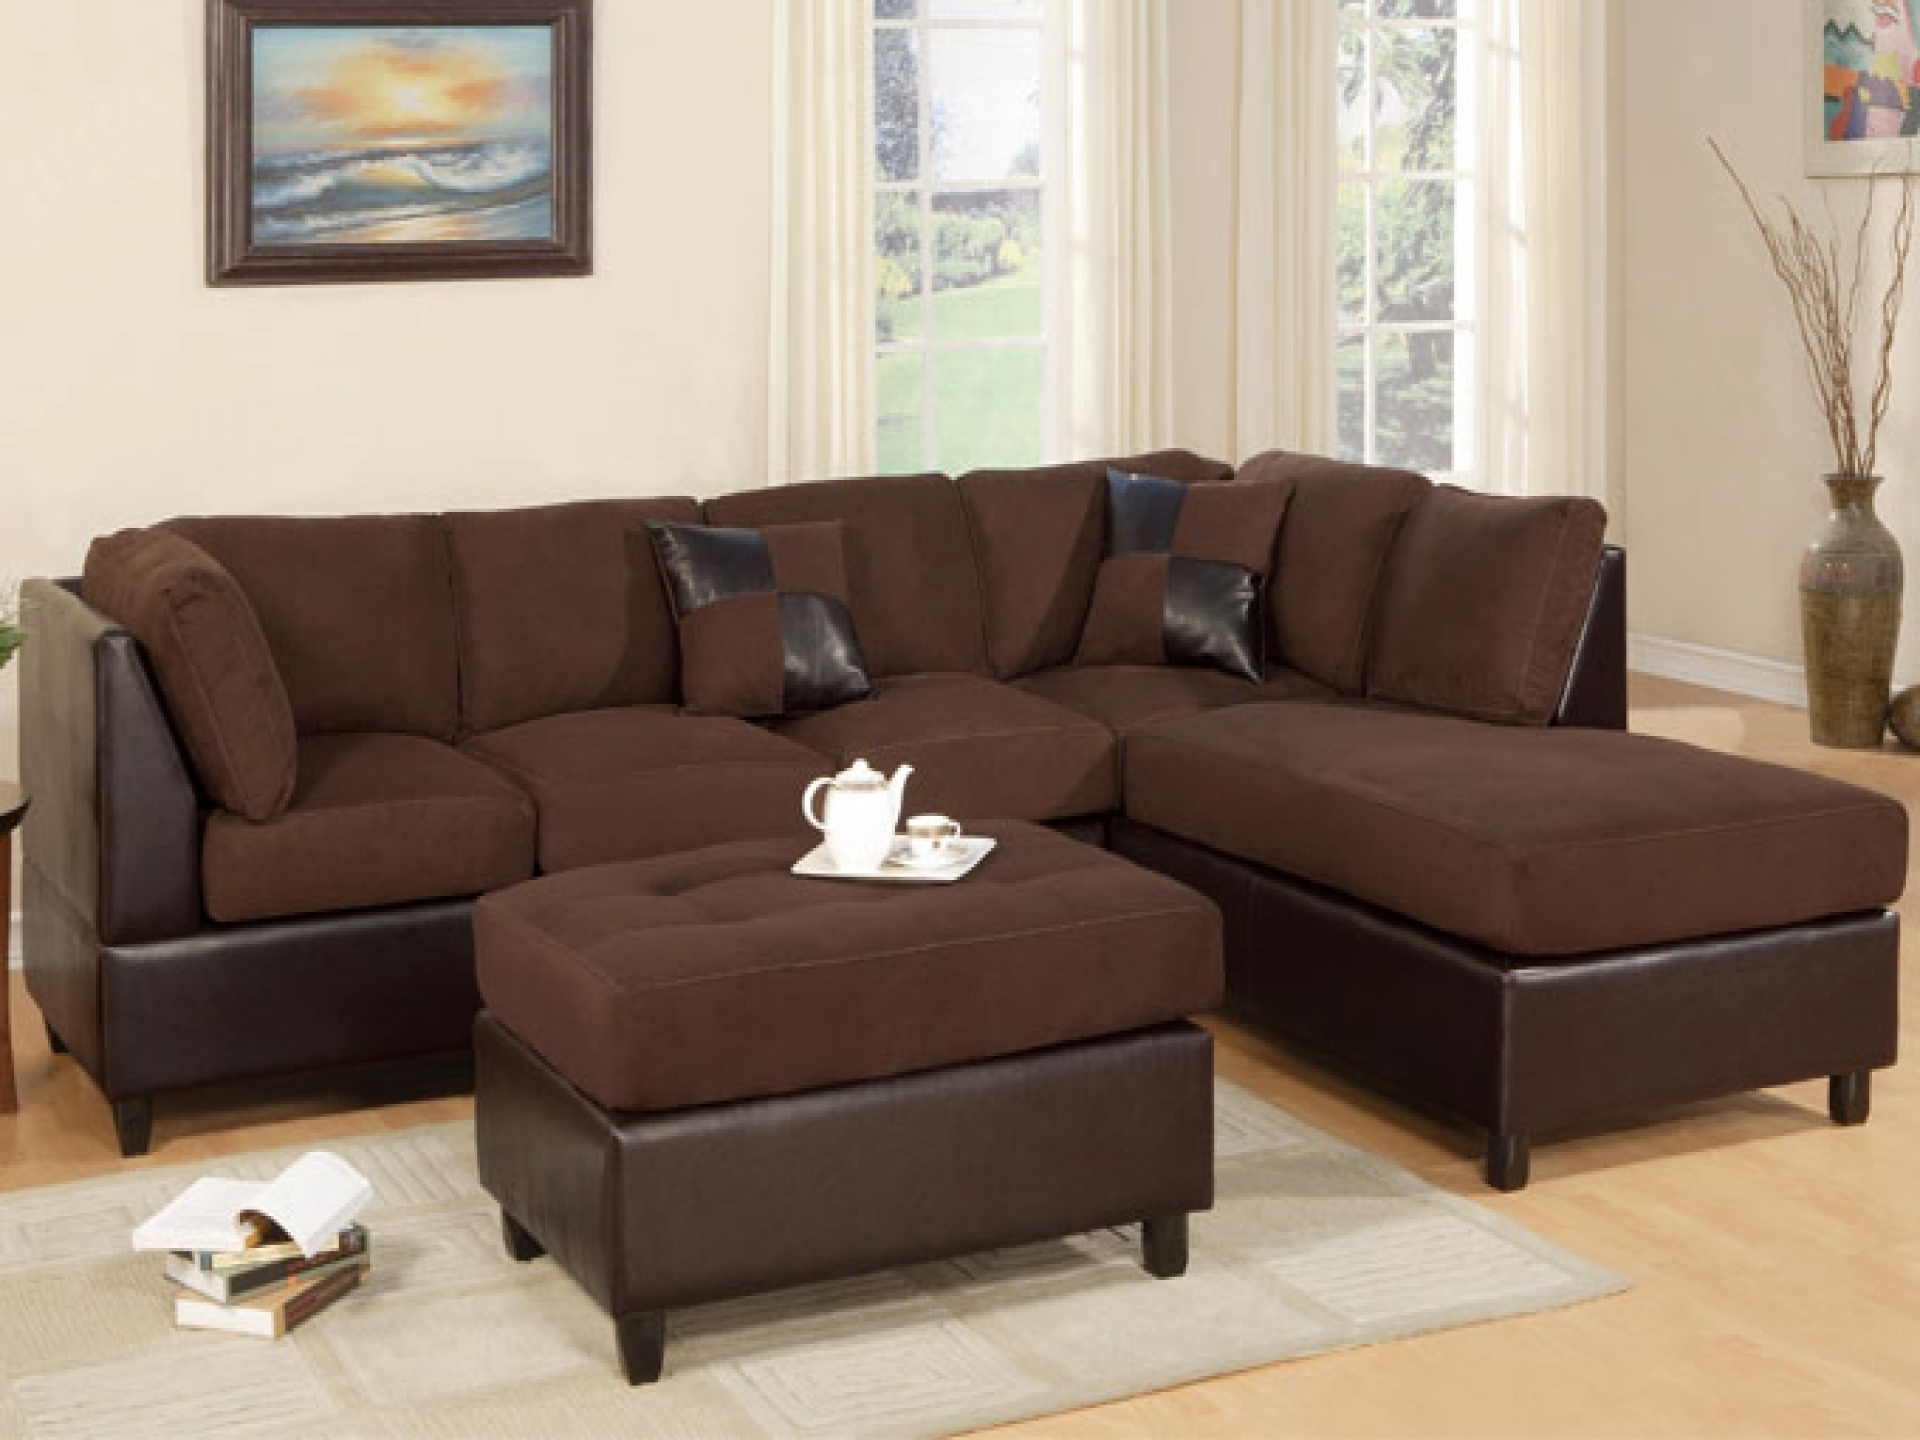 Furniture : Sectional Couch Okc Sectional Sofa Gainesville Fl For 2019 Gainesville Fl Sectional Sofas (View 4 of 20)